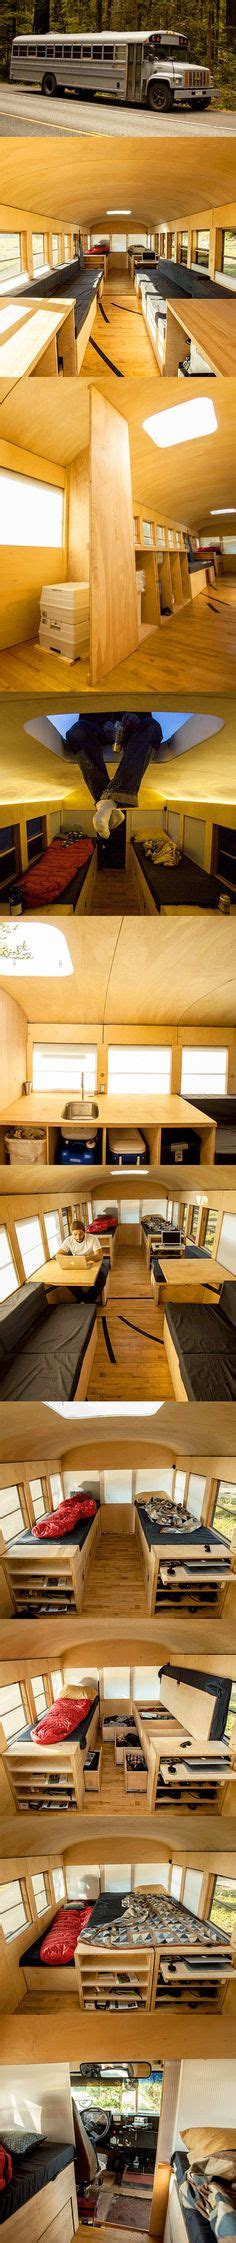 School Converted Into Small Home By Architecture Student by 1000 Images About Small Spaces On Tiny House